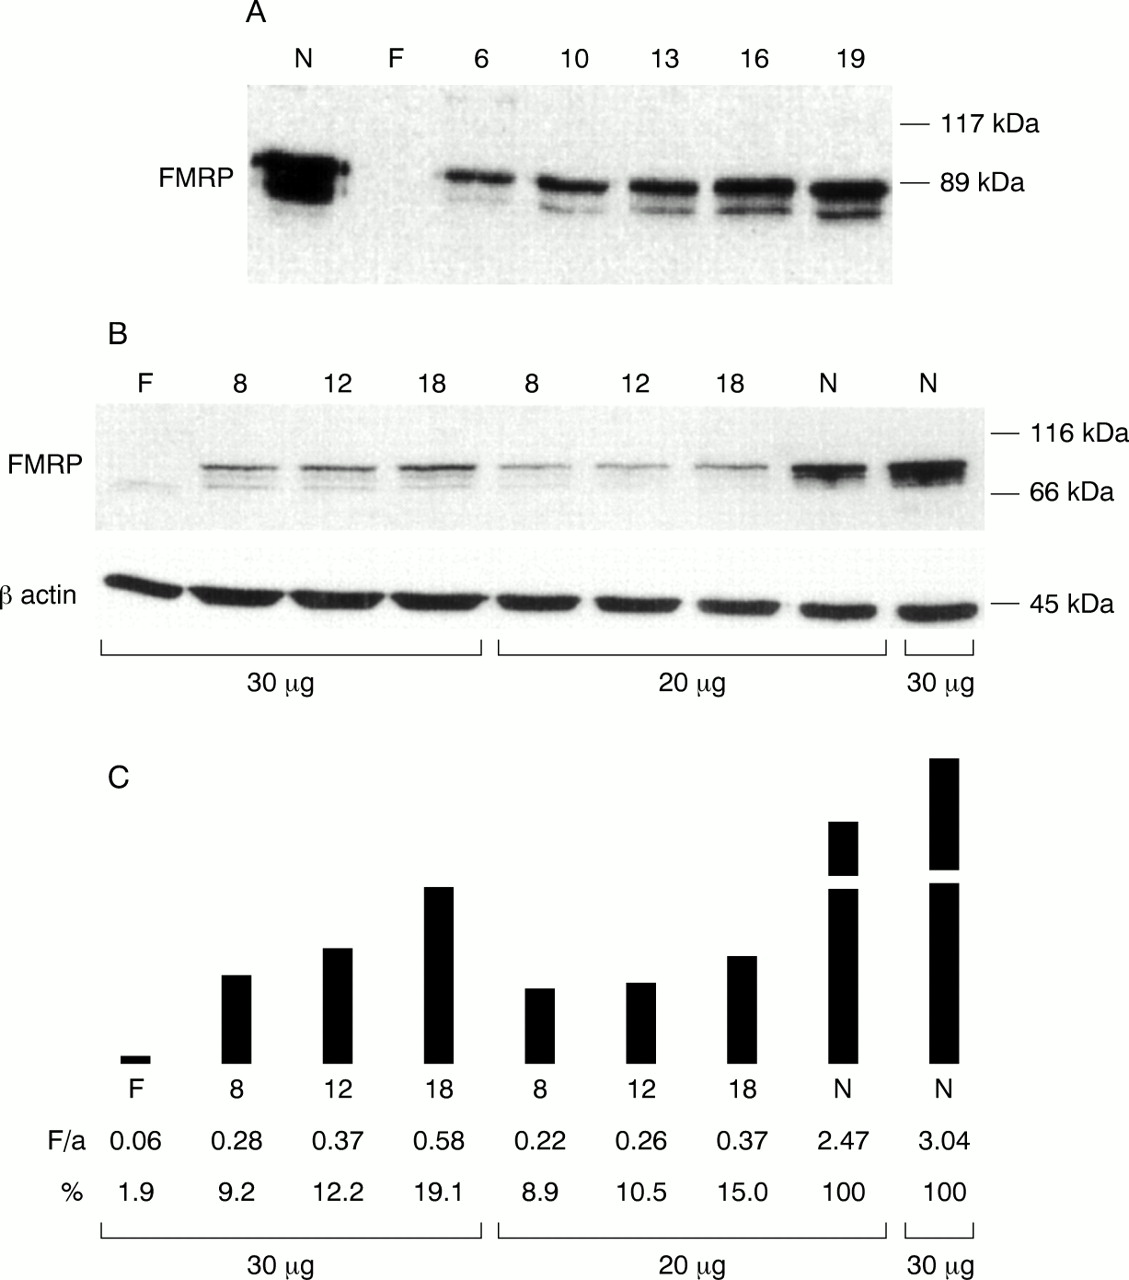 Increase of FMRP expression, raised levels ofFMR1 mRNA